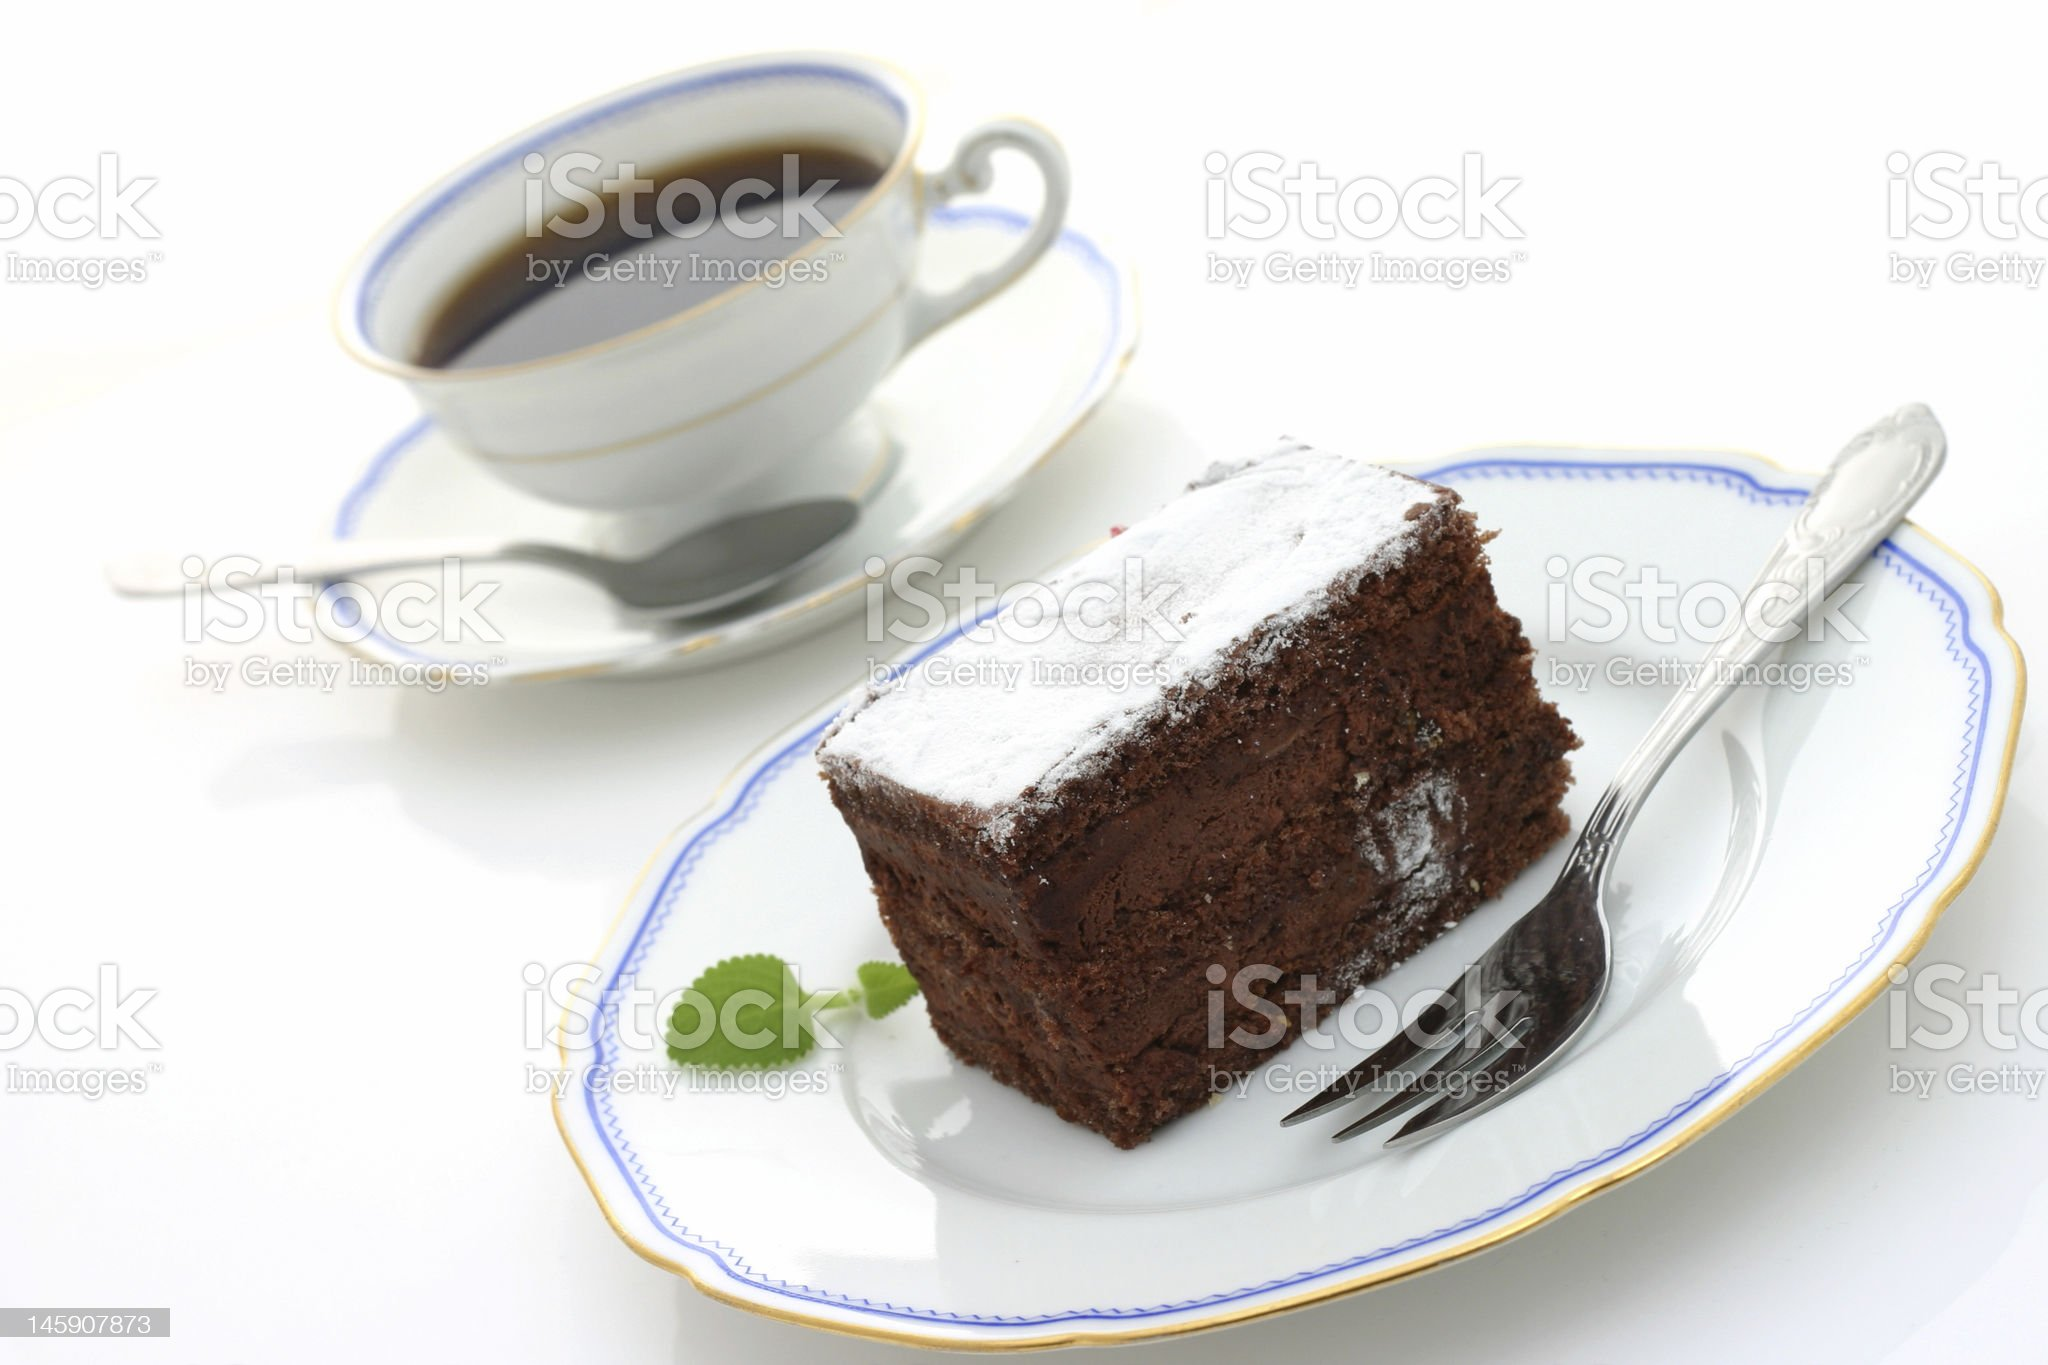 cup of coffee and chocolate cake royalty-free stock photo